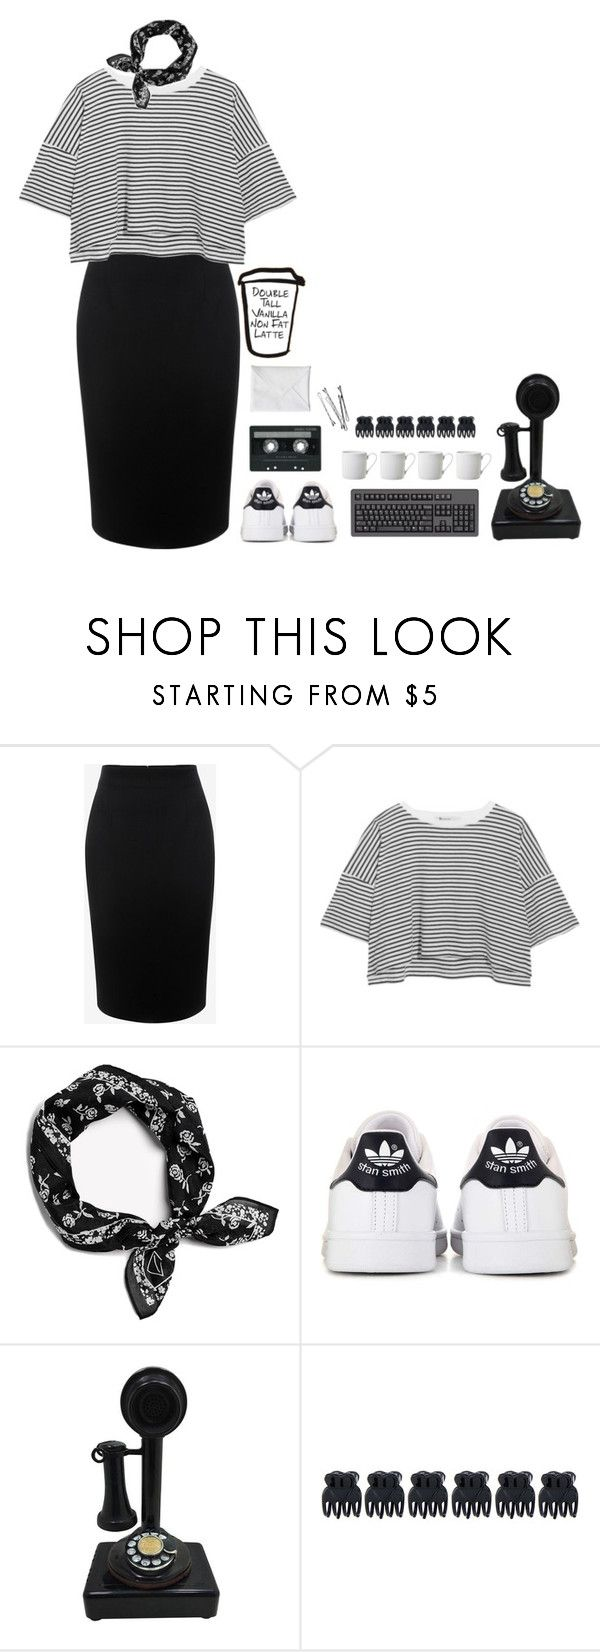 """""""Double tall vanilla non fat latte."""" by sabreerae ❤ liked on Polyvore featuring Alexander McQueen, T By Alexander Wang, rag & bone, adidas, CASSETTE, Accessorize and LSA International"""